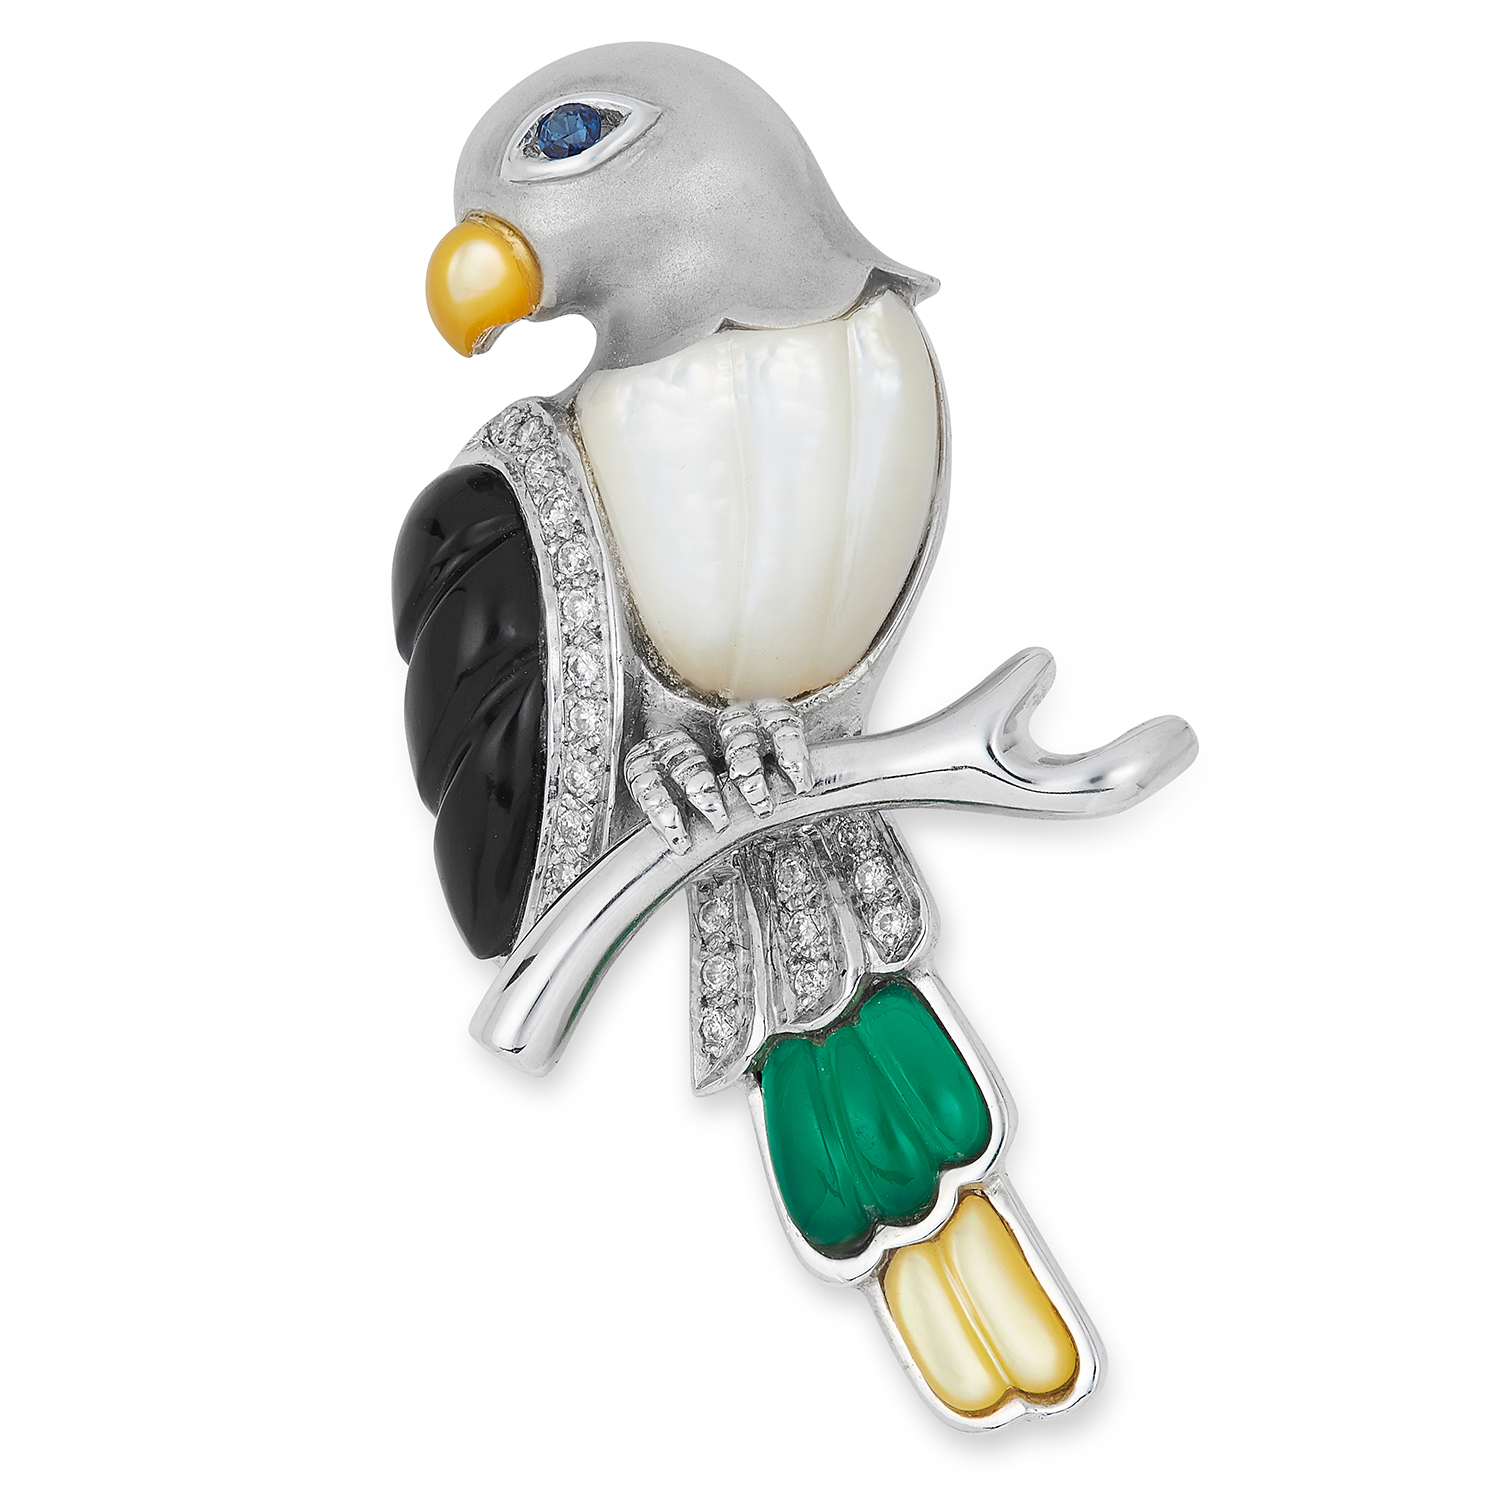 Los 30 - GEMSET PARROT BROOCH, set with multi coloured hardstones, onyx and a round cut sapphire, 4.7cm, 11.